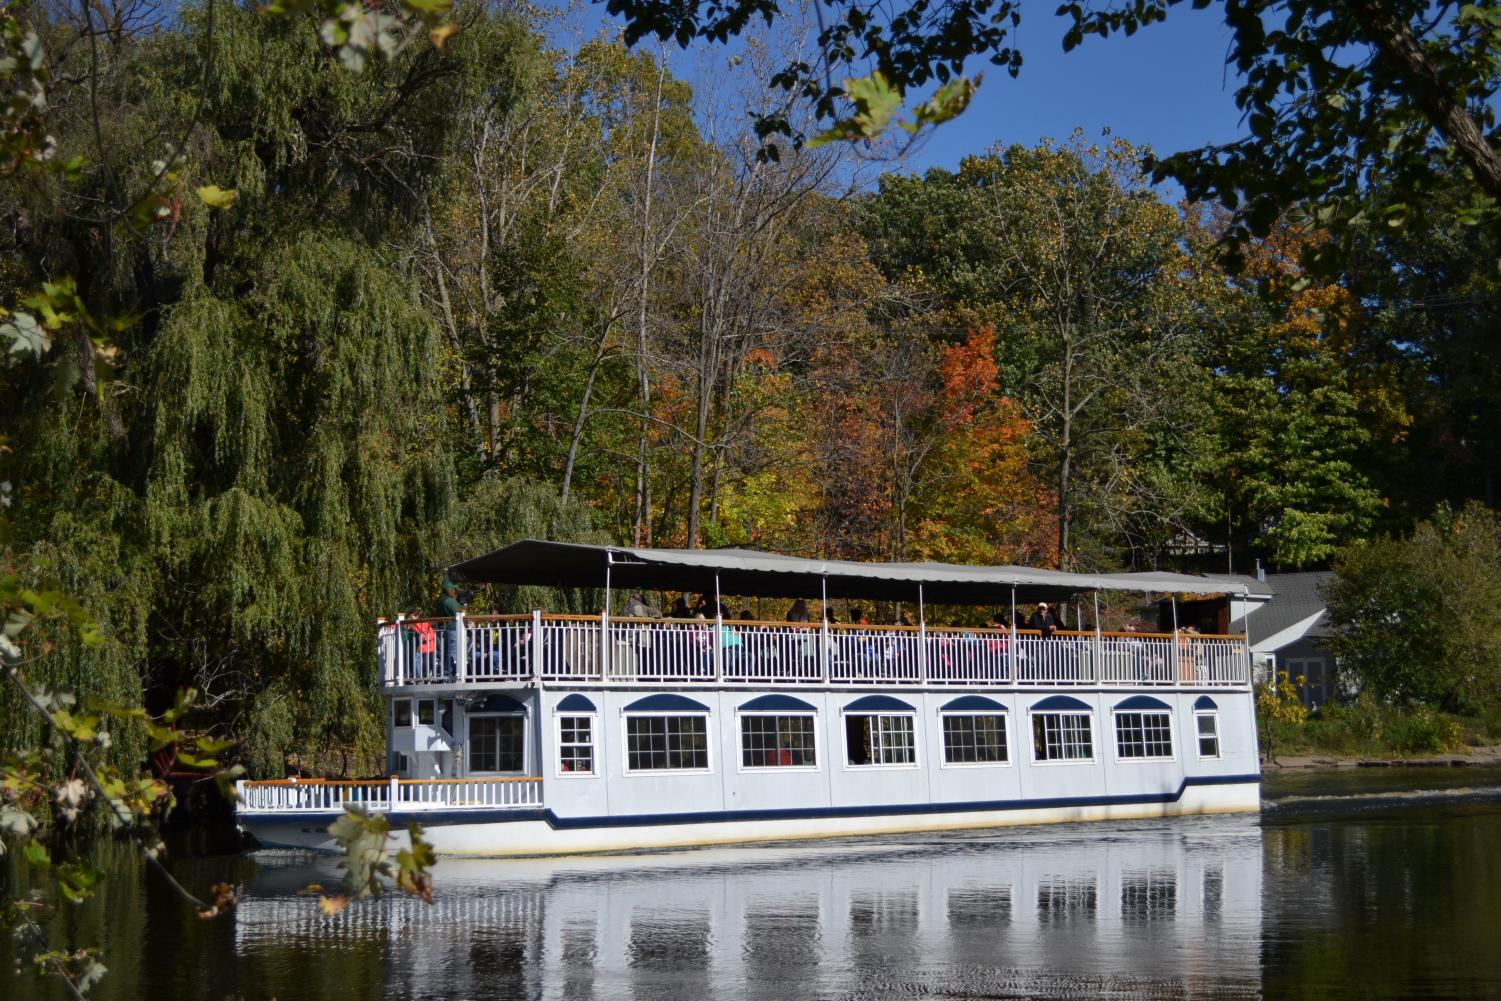 The Grand Ledge riverboat takes community members on a tour to view the way the foliage is changing for fall. The 2018 Color Cruise and Island Festival was 39th annual celebration